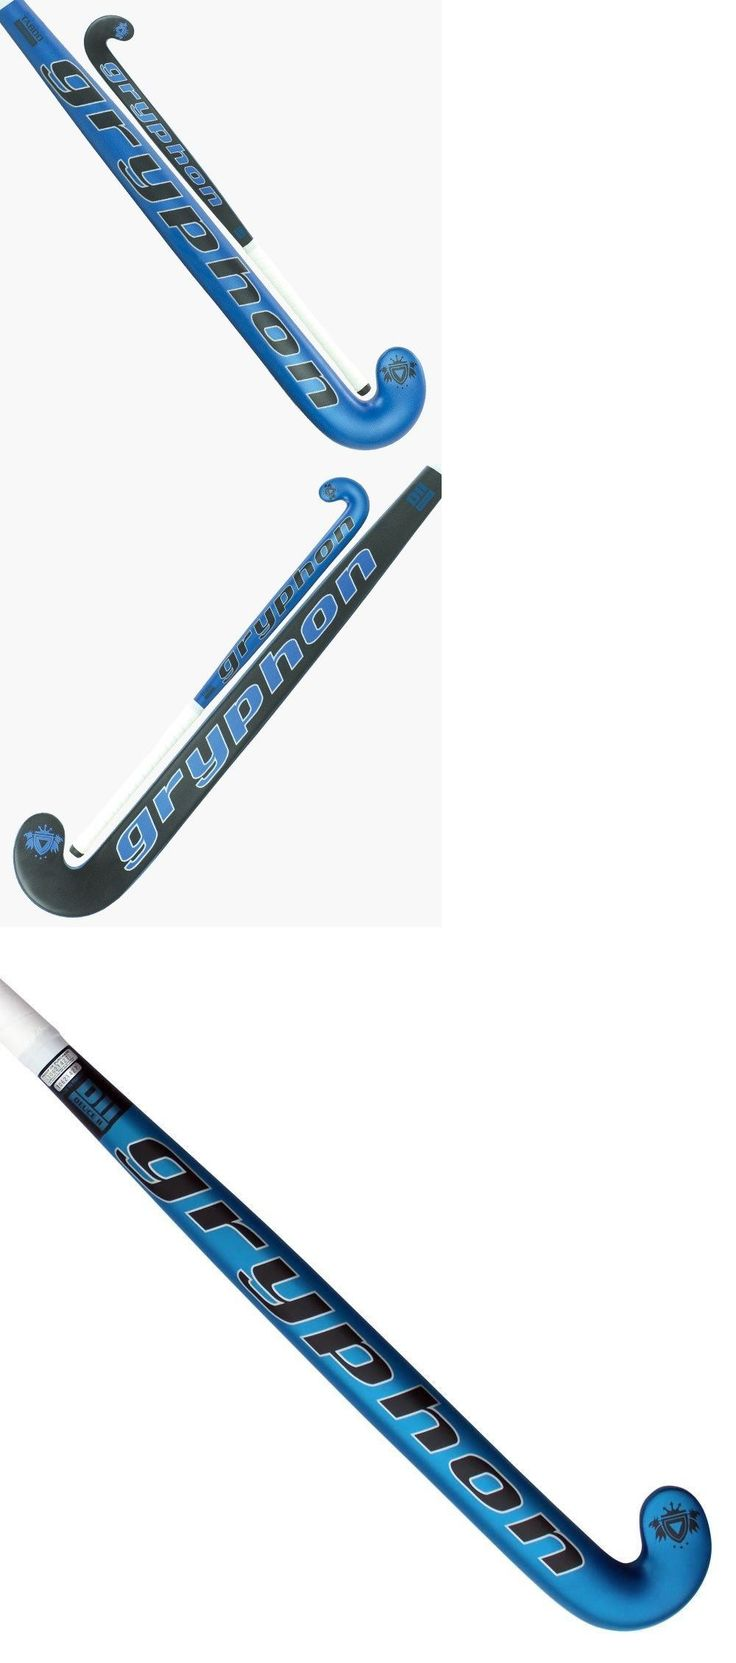 Field Hockey 4388: Gryphon Taboo Bluesteel Deuce 2 Composite Field Hockey Stick Size 36.5 BUY IT NOW ONLY: $172.5